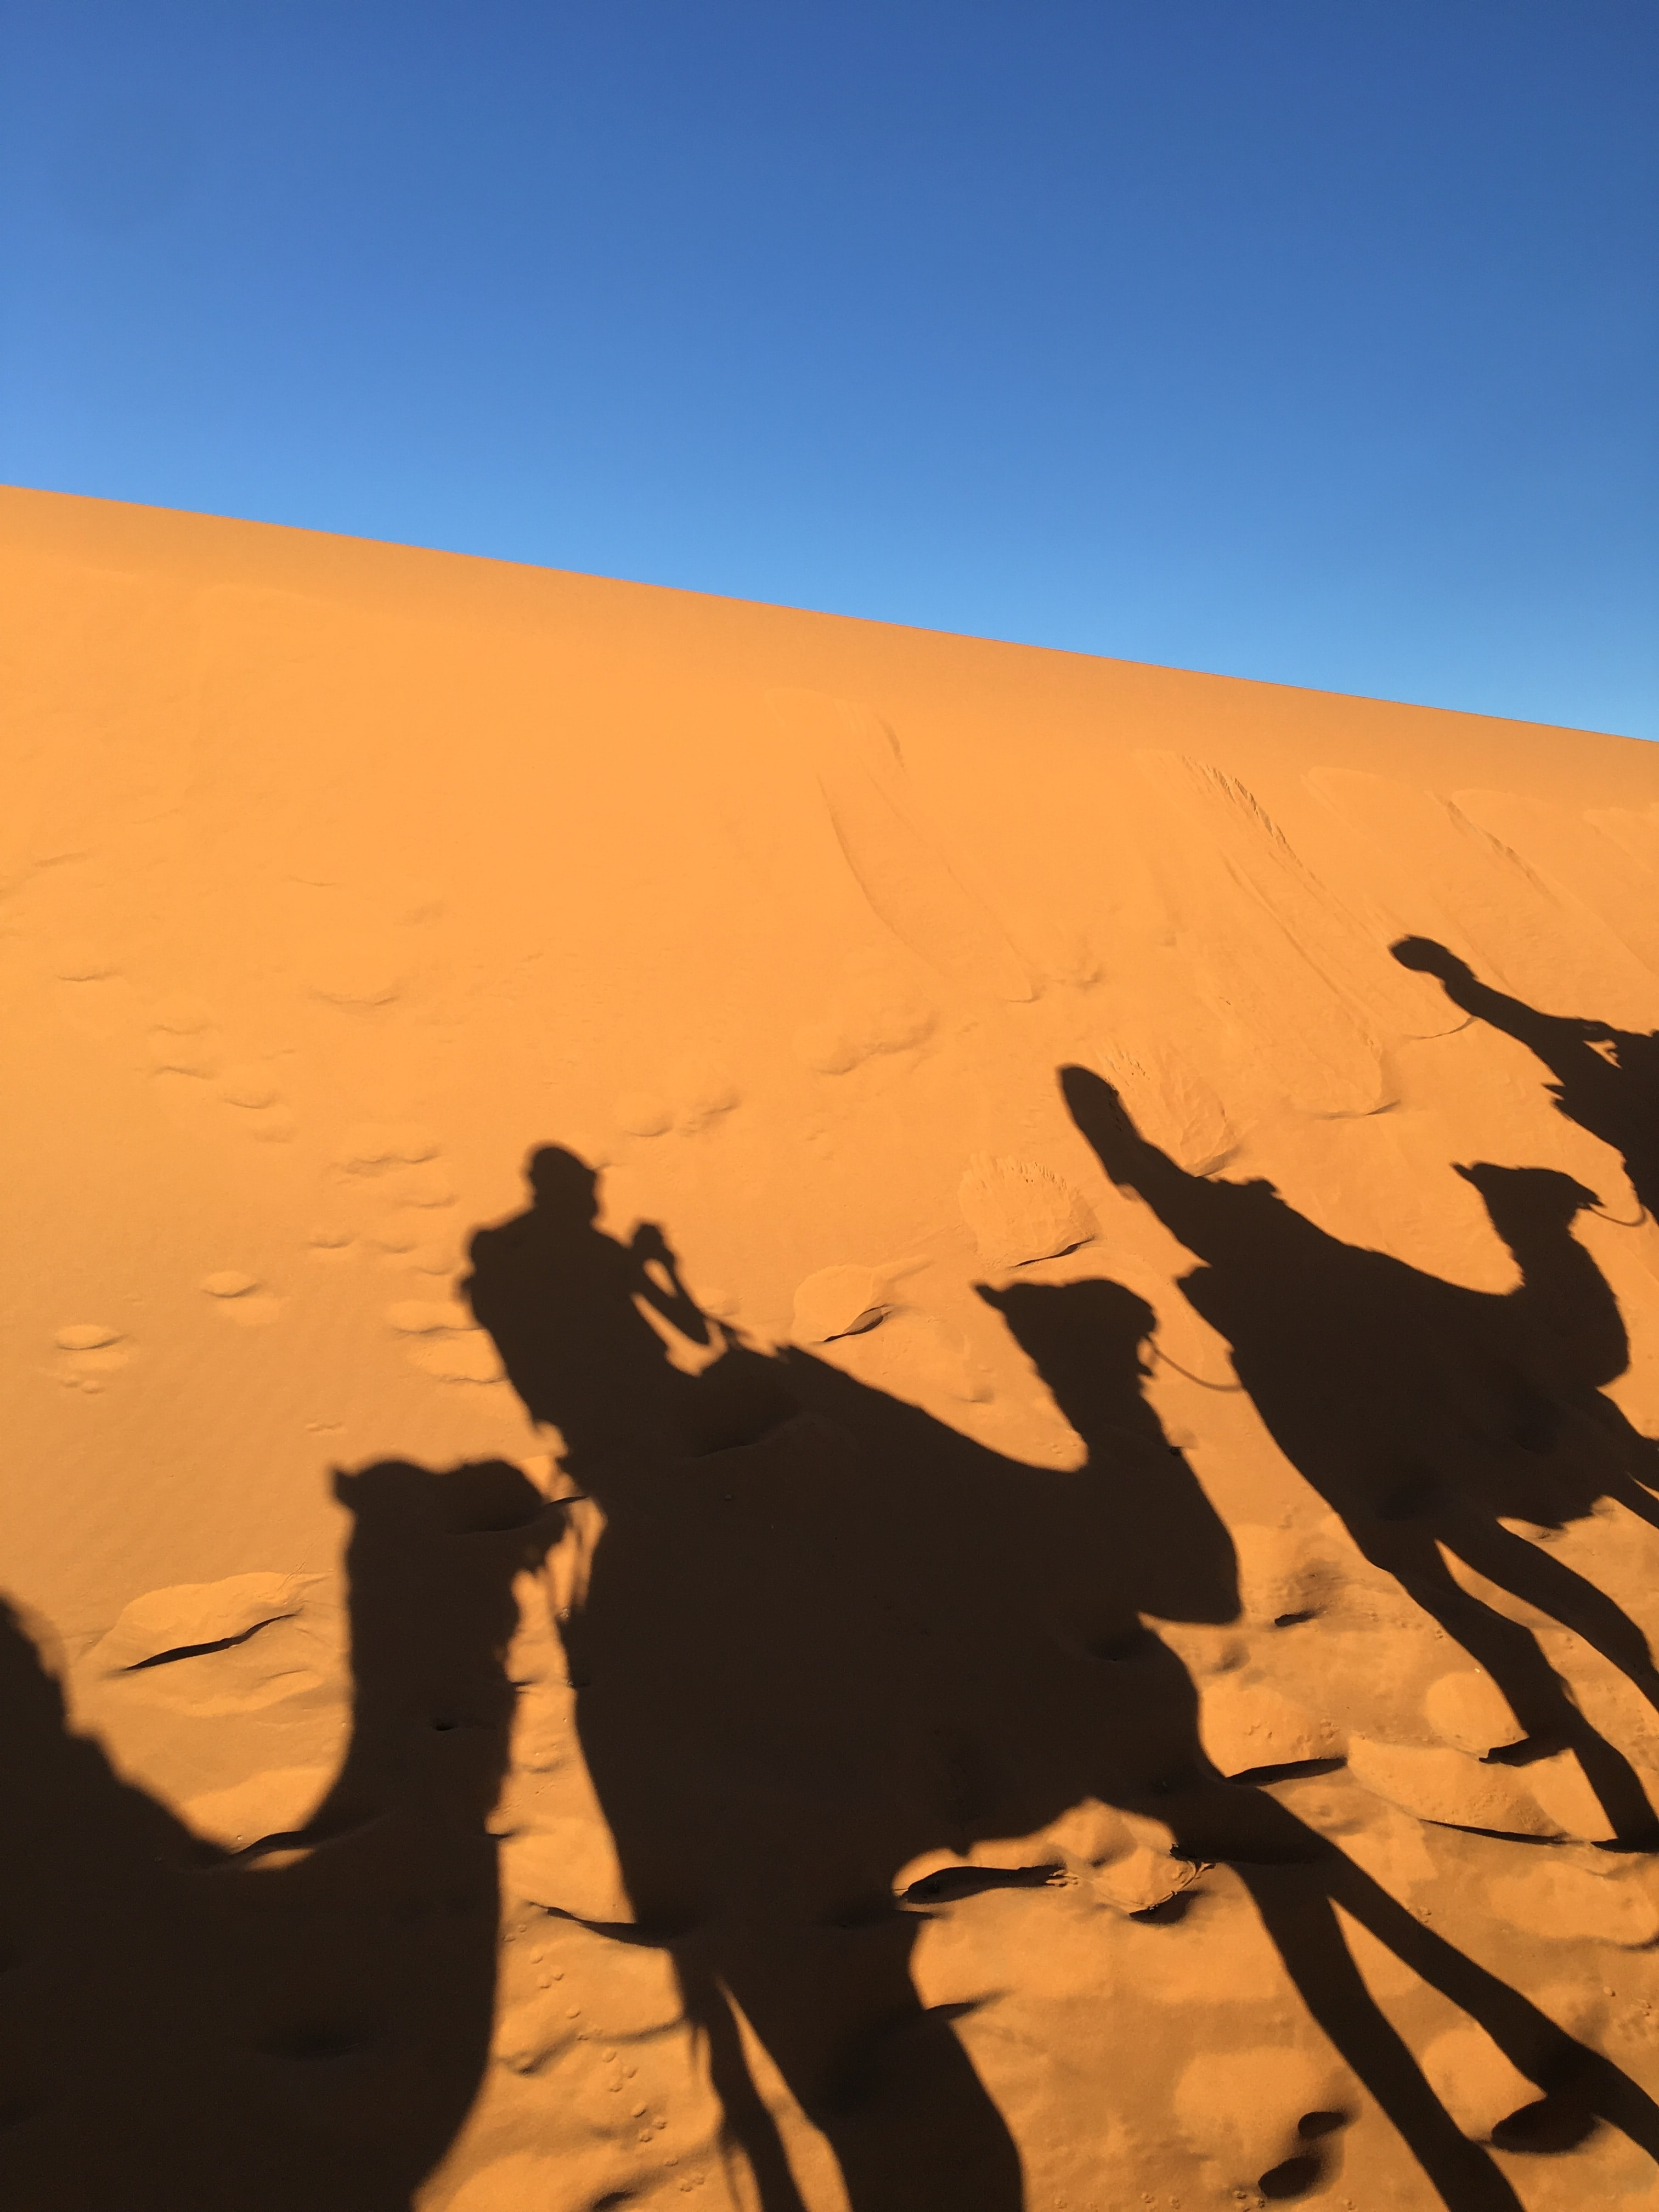 silhouette of four person riding camel on desert during daytime